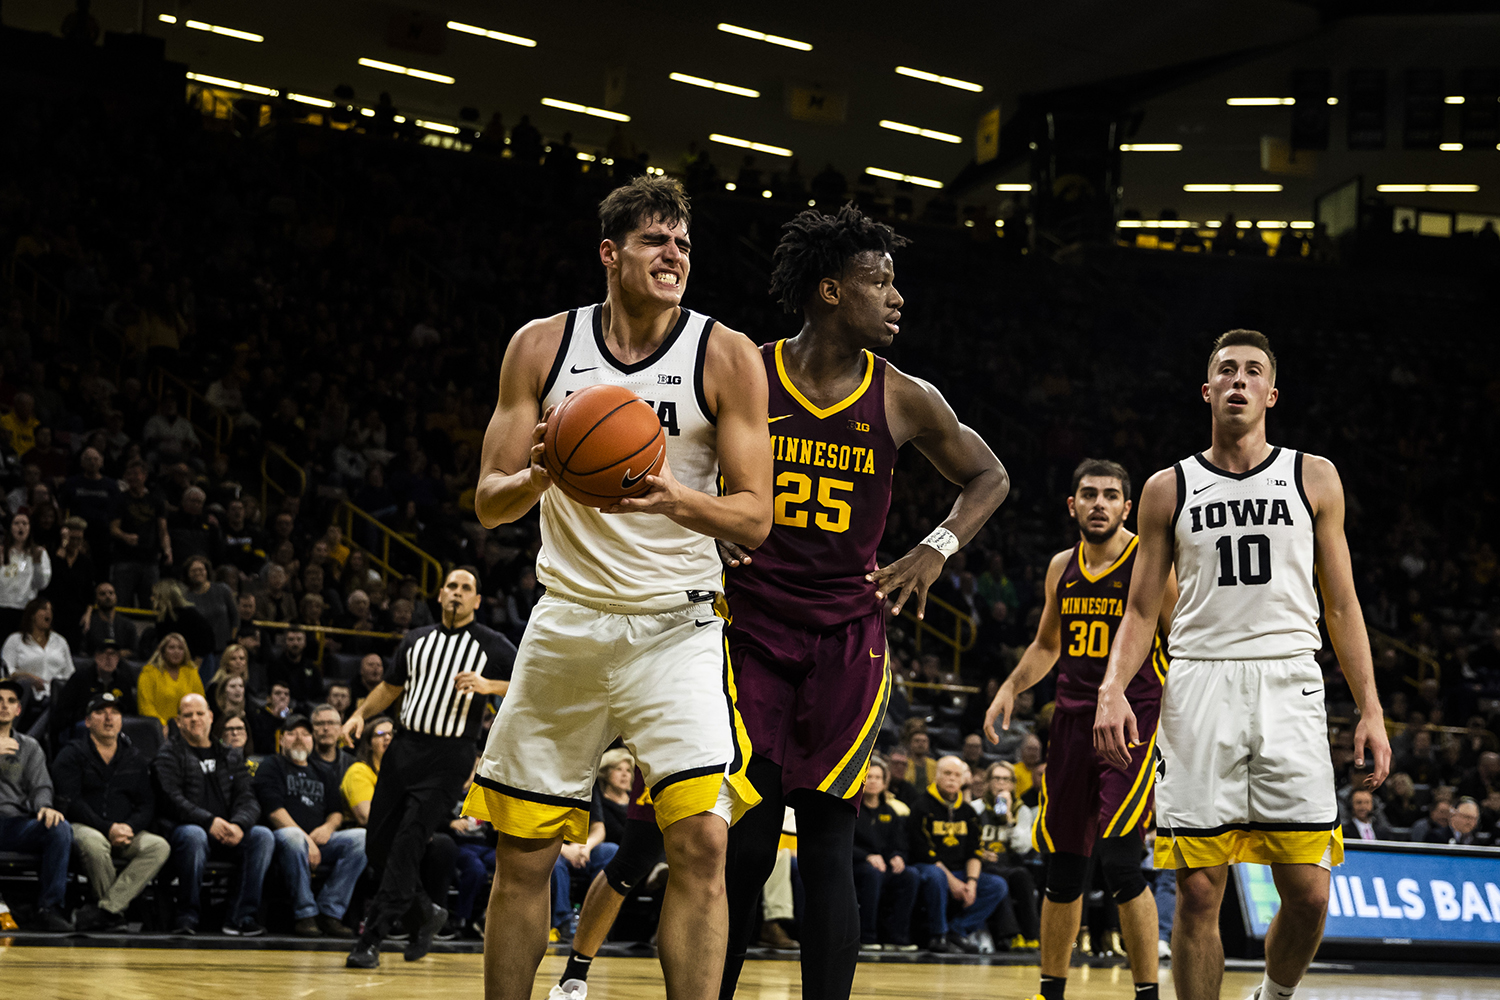 Iowa center Luka Garza reacts during the men's basketball game against Minnesota at Carver-Hawkeye Arena on Monday, December 9, 2019. The Hawkeyes defeated the Gophers 72-52. Garza played 30 minutes during the game.